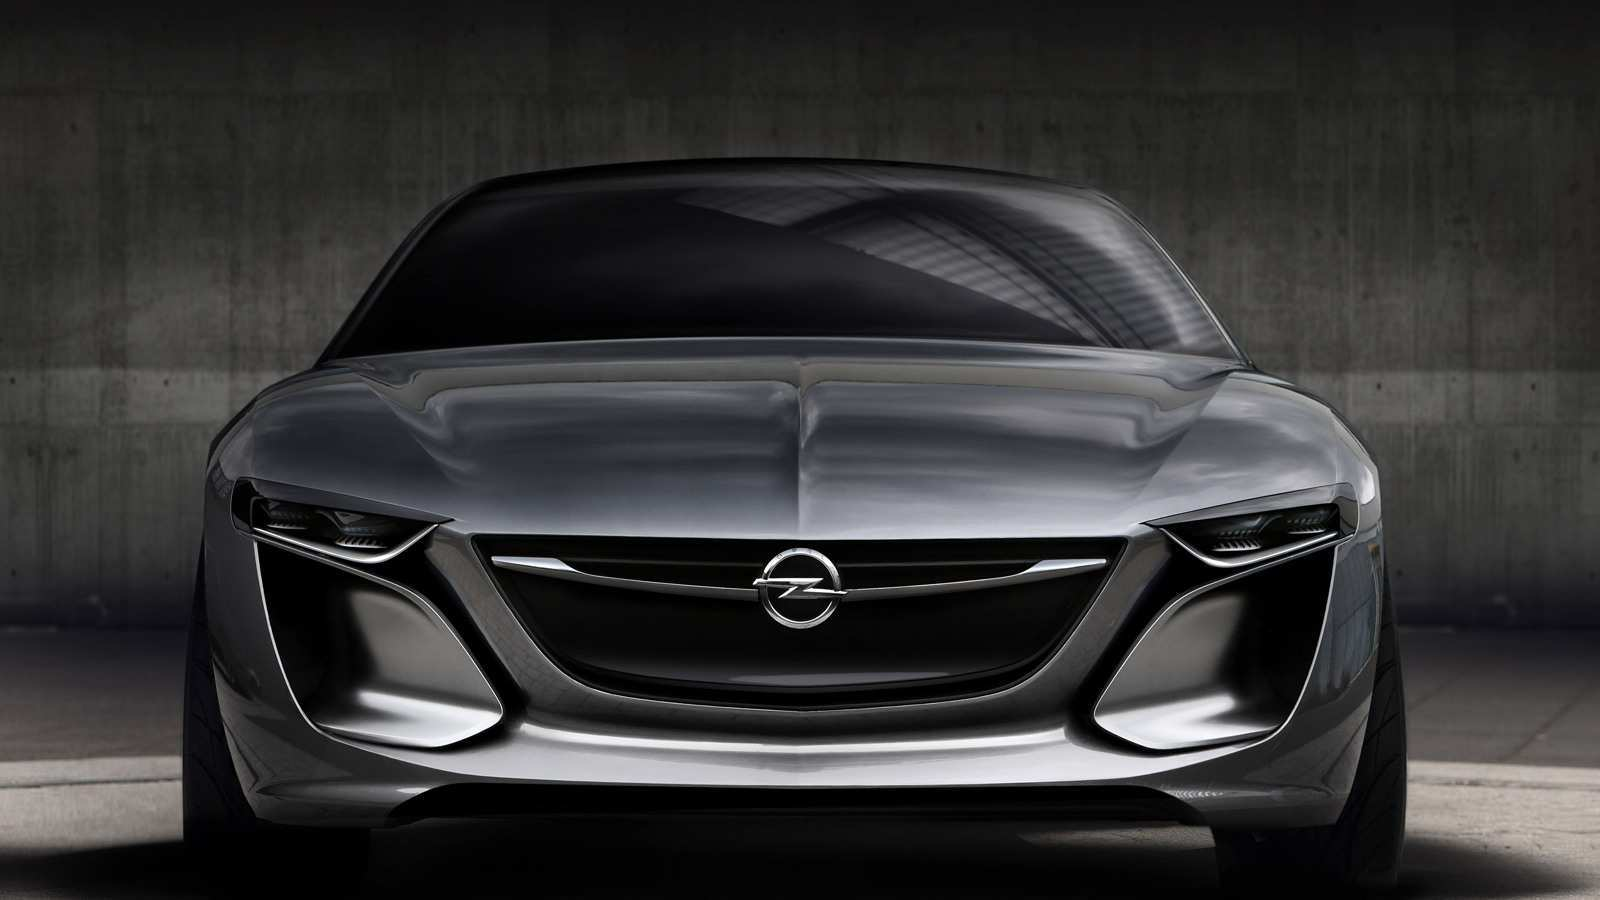 99 Concept of Opel Monza 2020 Images for Opel Monza 2020